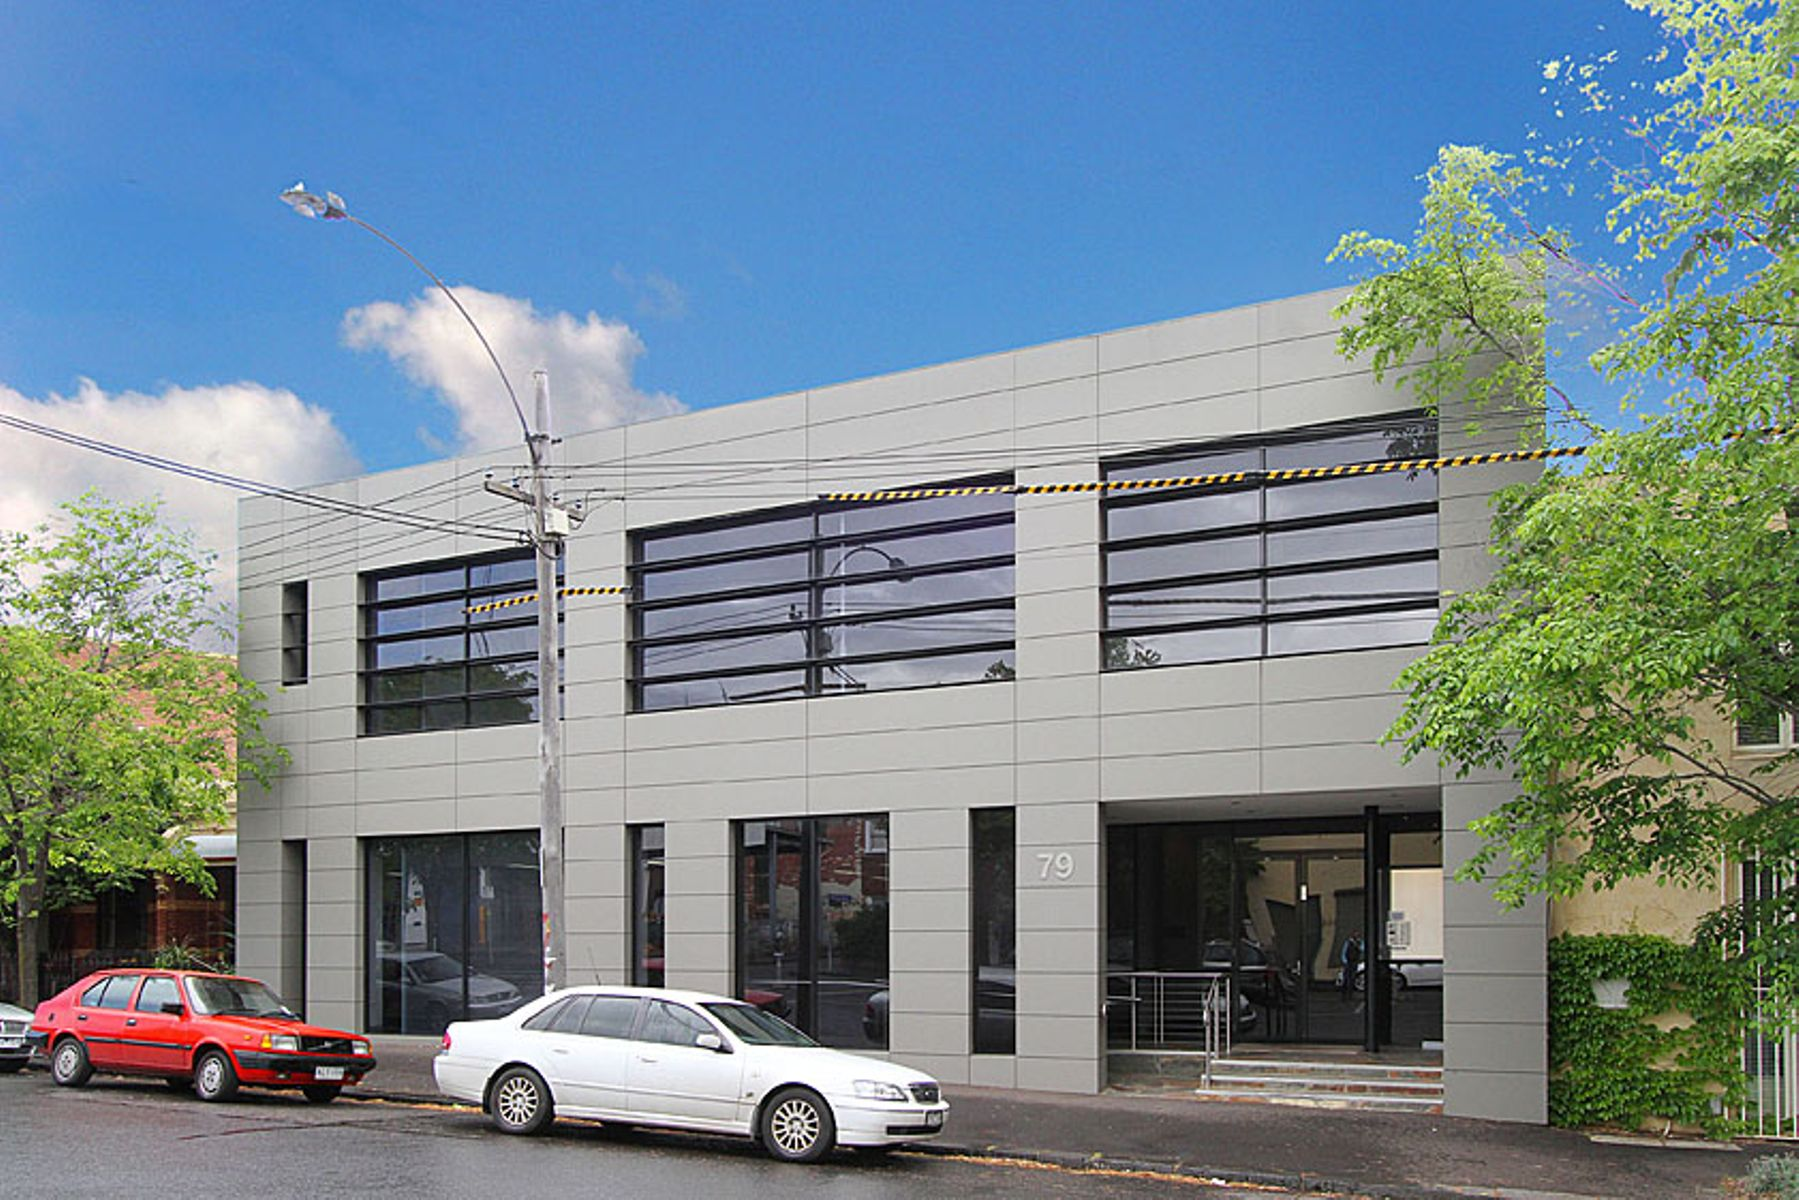 Pagan Real Estate 11 A B 75 79 Chetwynd Street North Melbourne